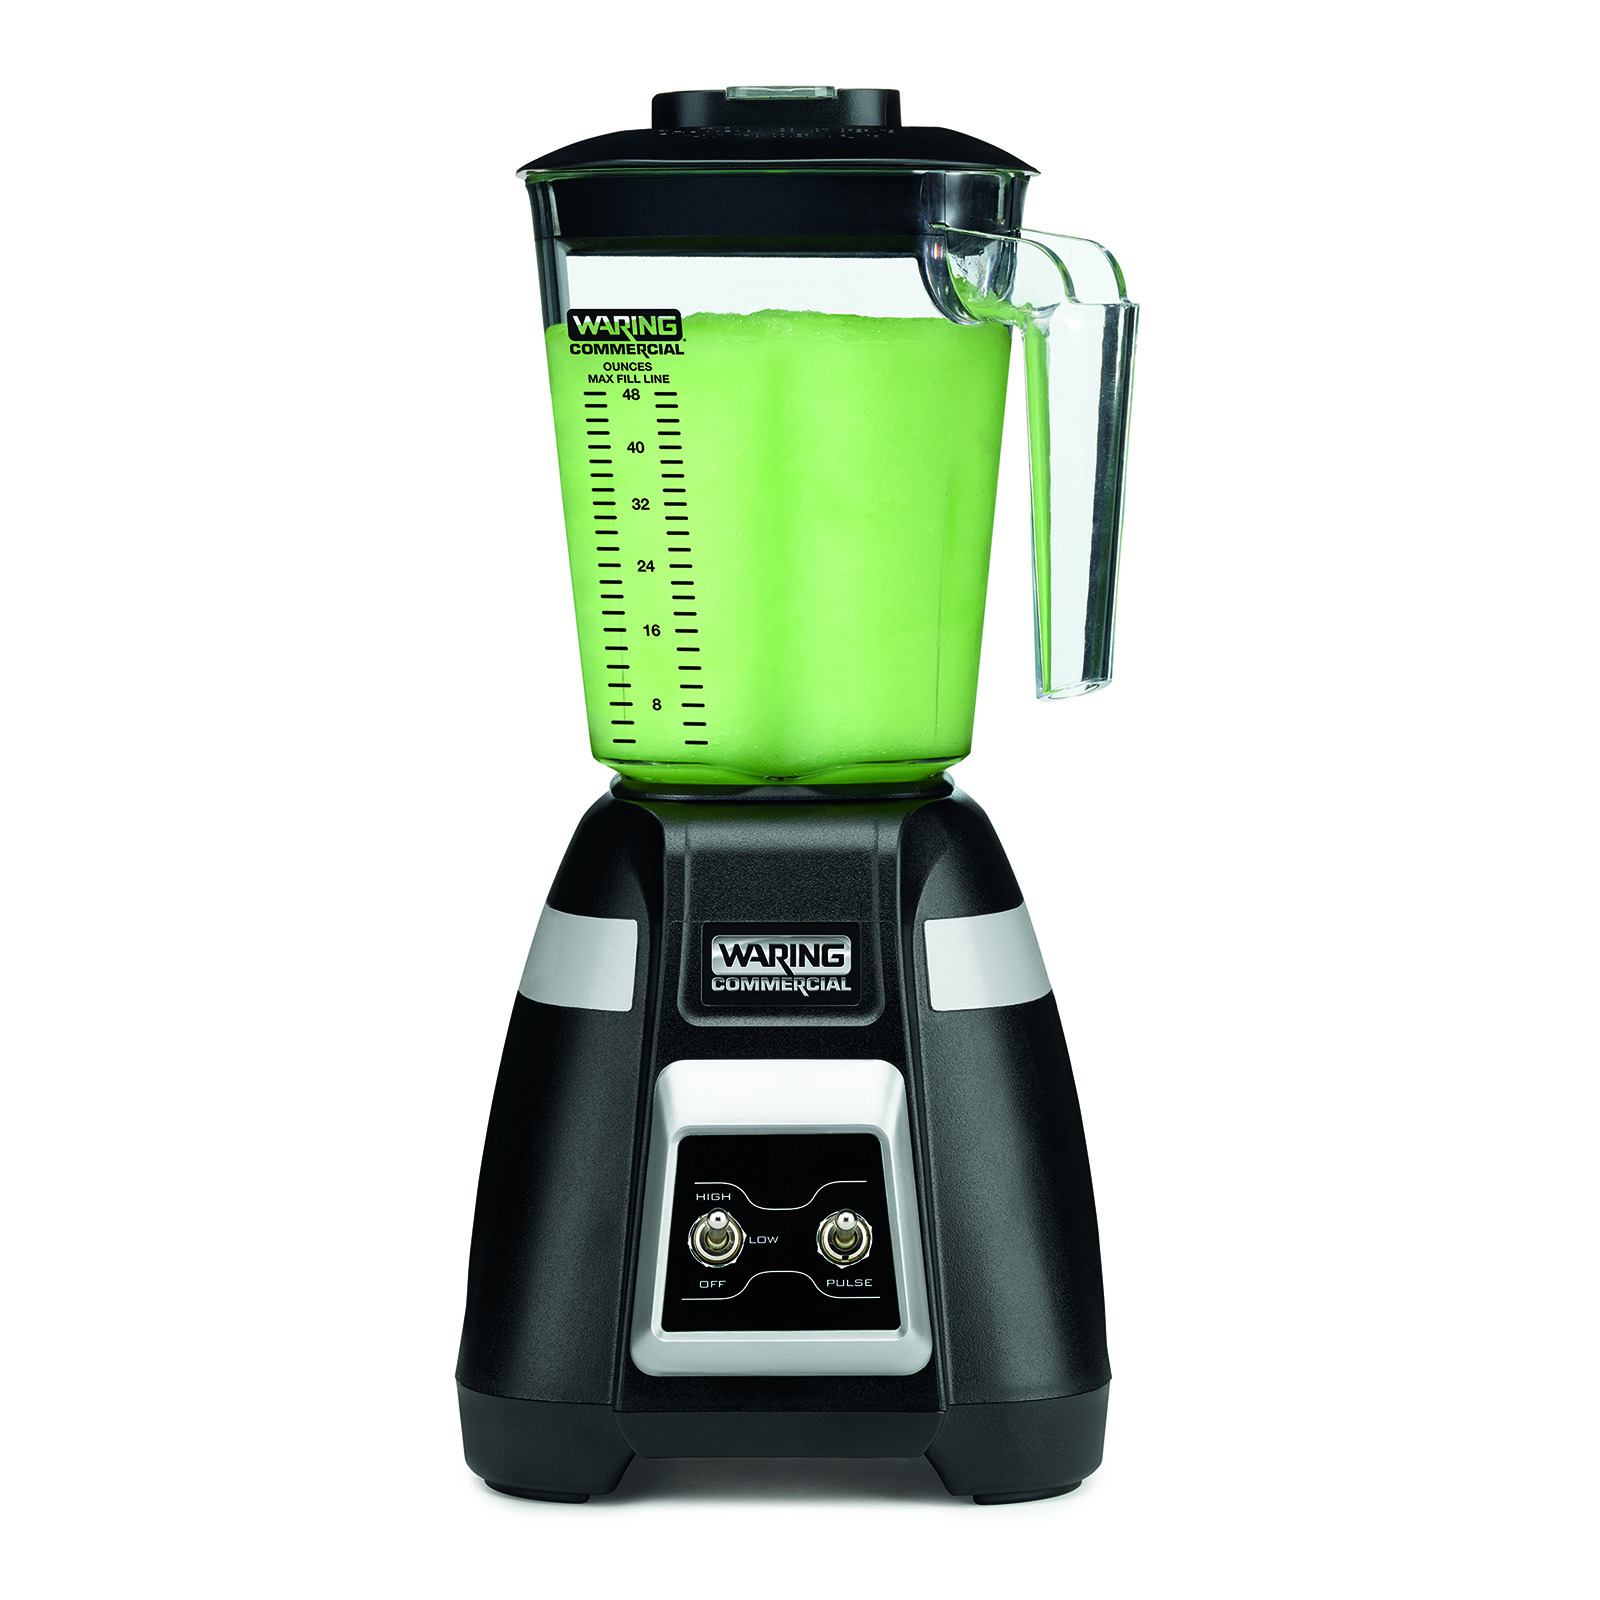 Waring BB300 blender, bar